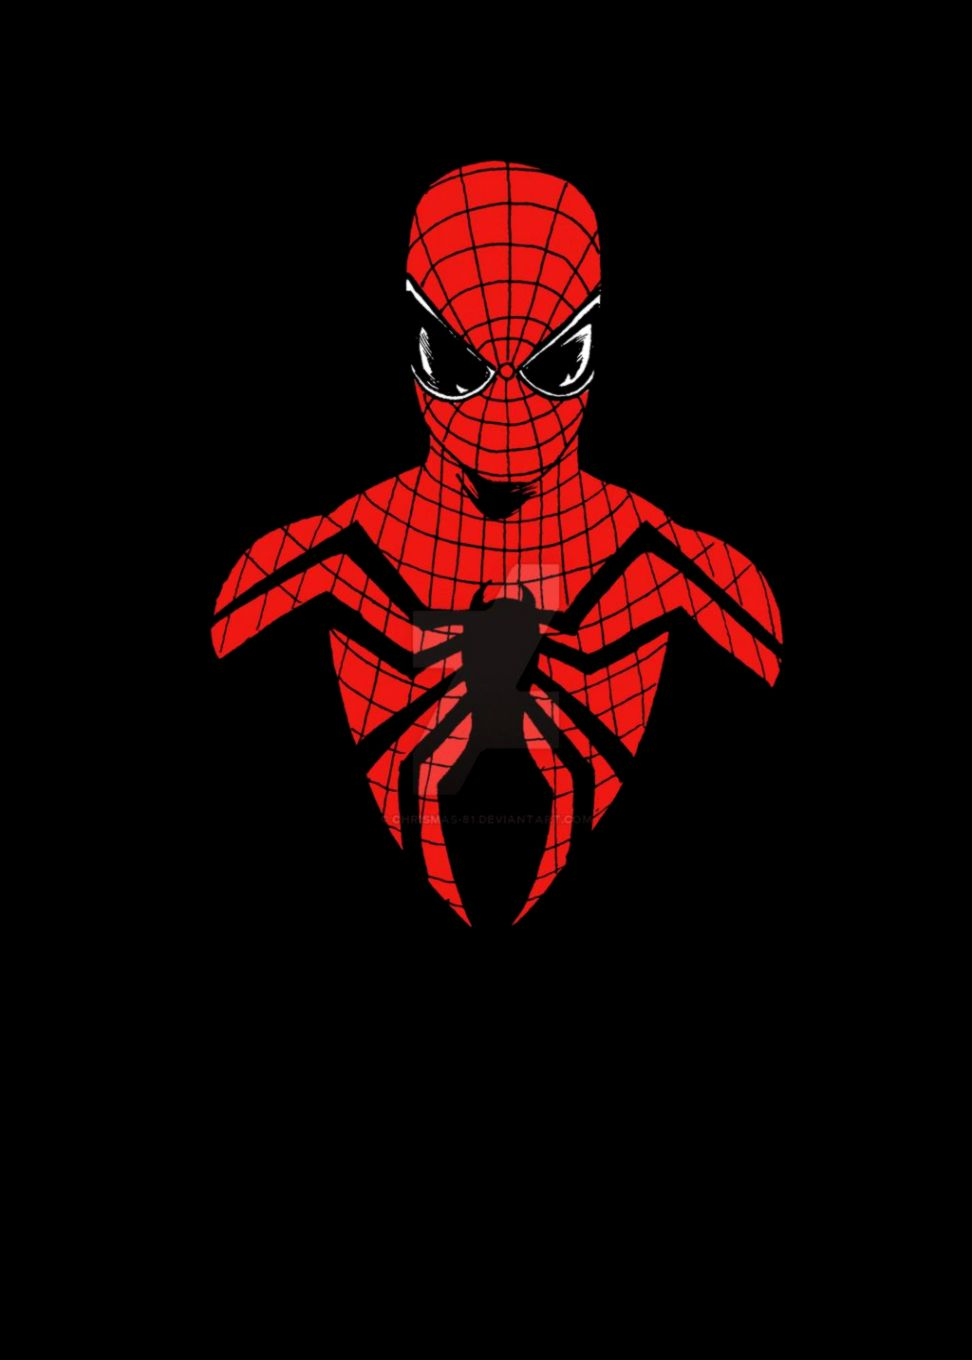 Superior Spider Man Iphone Wallpapers Wallpaper Cave   Hd 972x1360